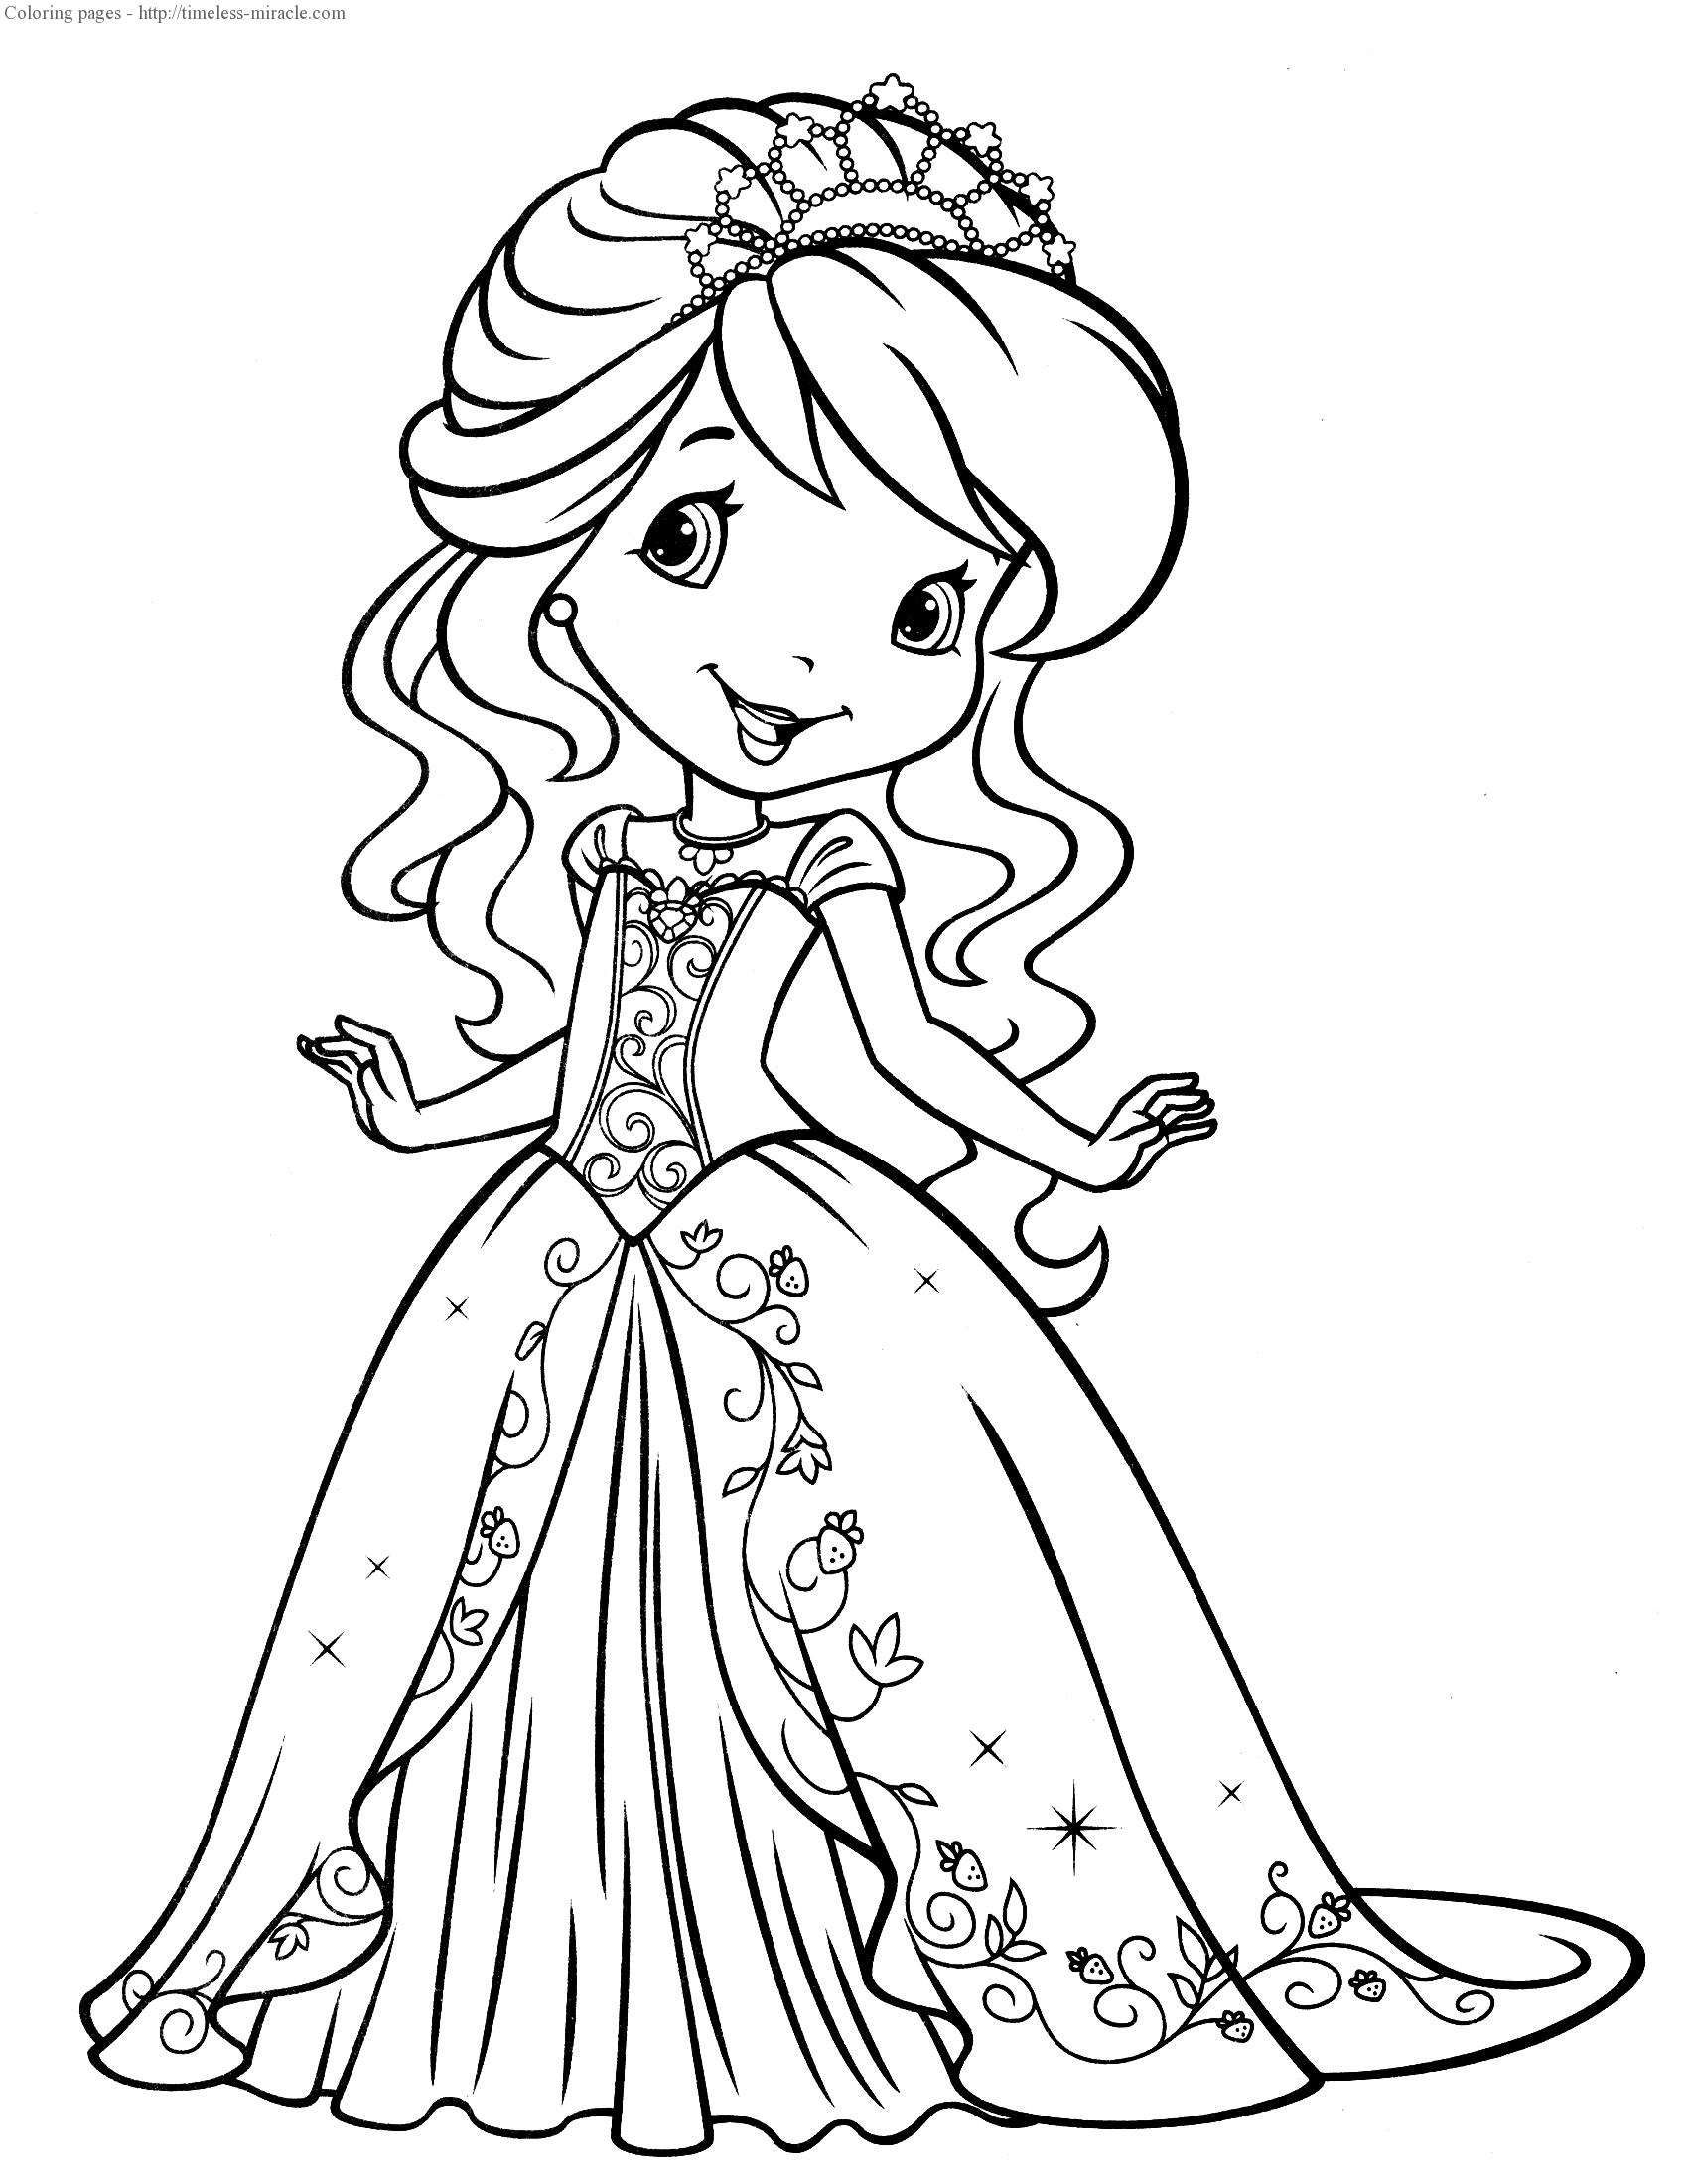 Strawberry shortcake princess coloring pages - timeless ...